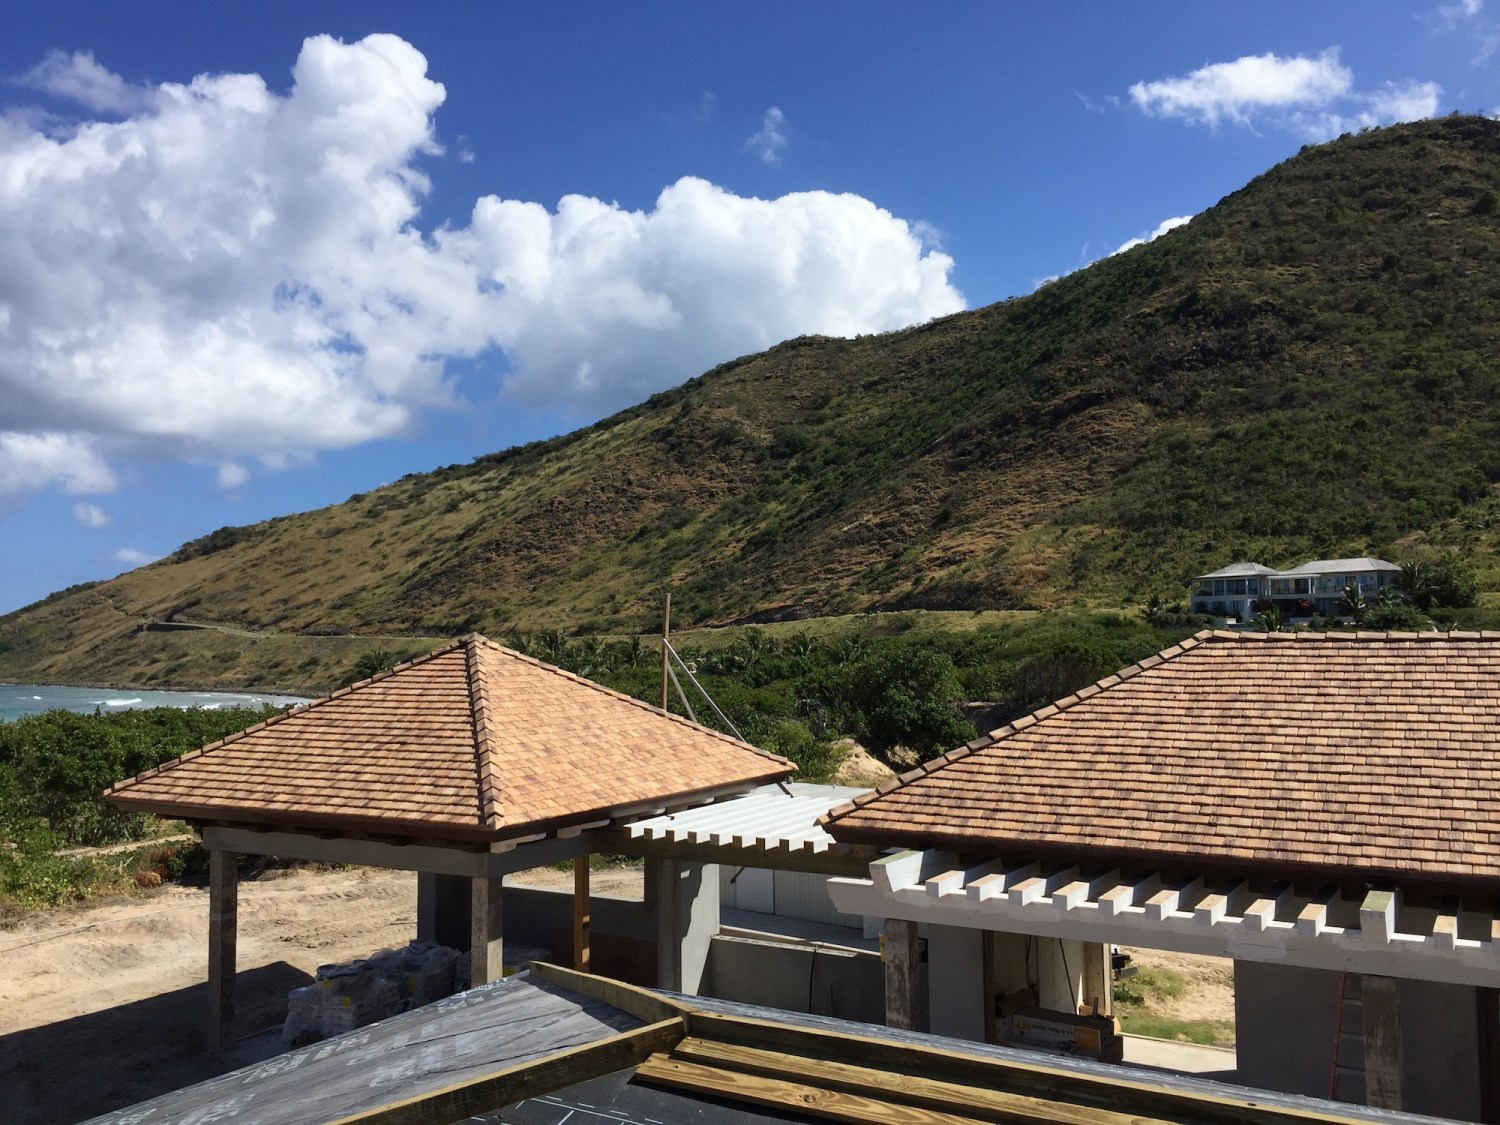 Rugged St. Kitts mountains as seen from the clay-tiled roofs of an MMA project.